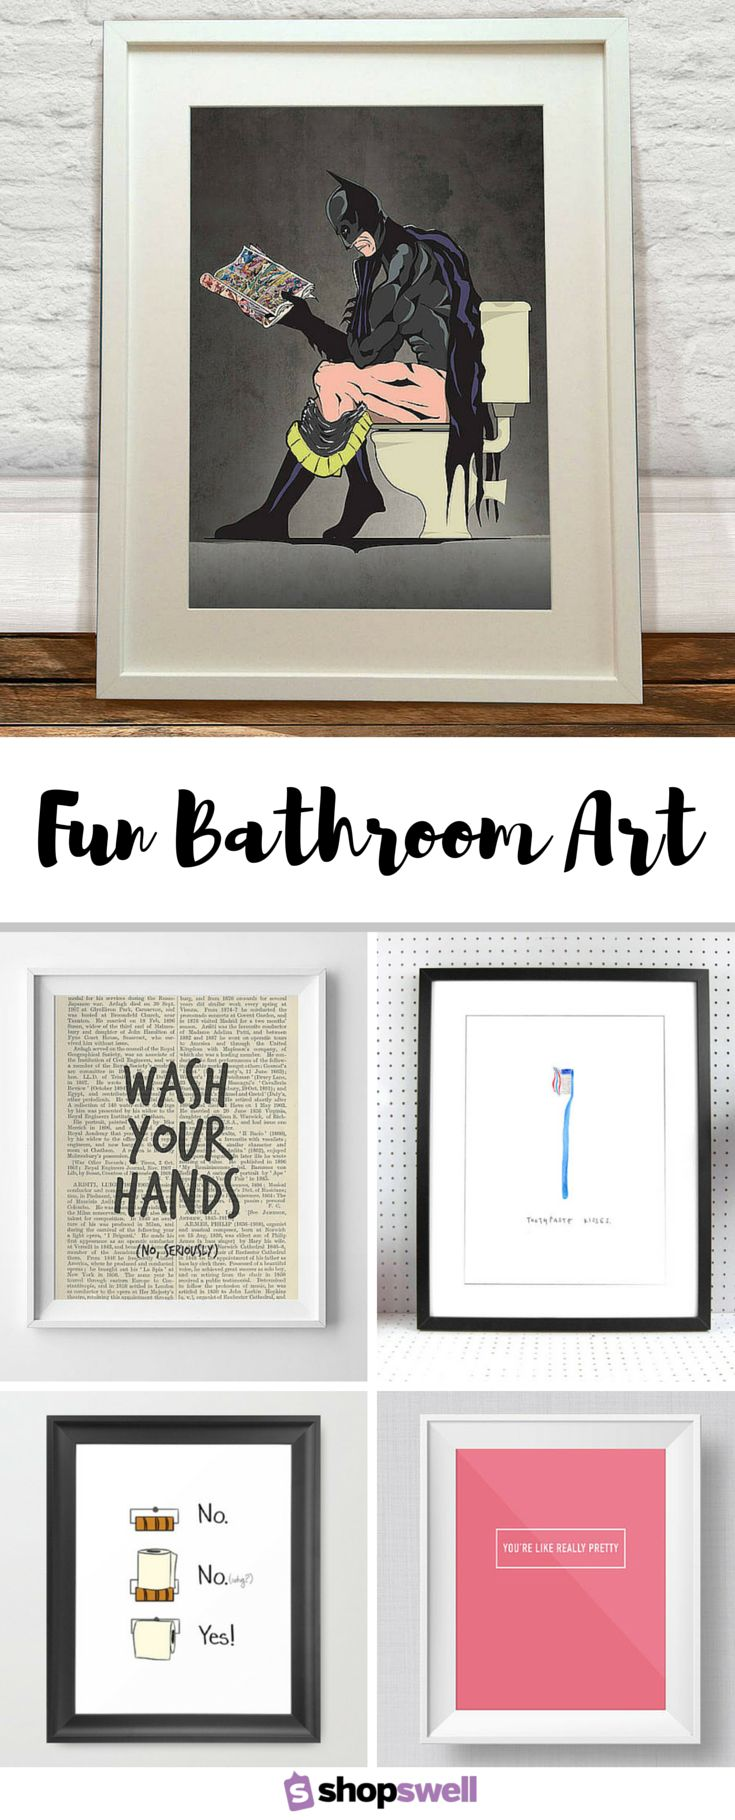 Bathroom wall decor quotes - Fun Bathroom Art